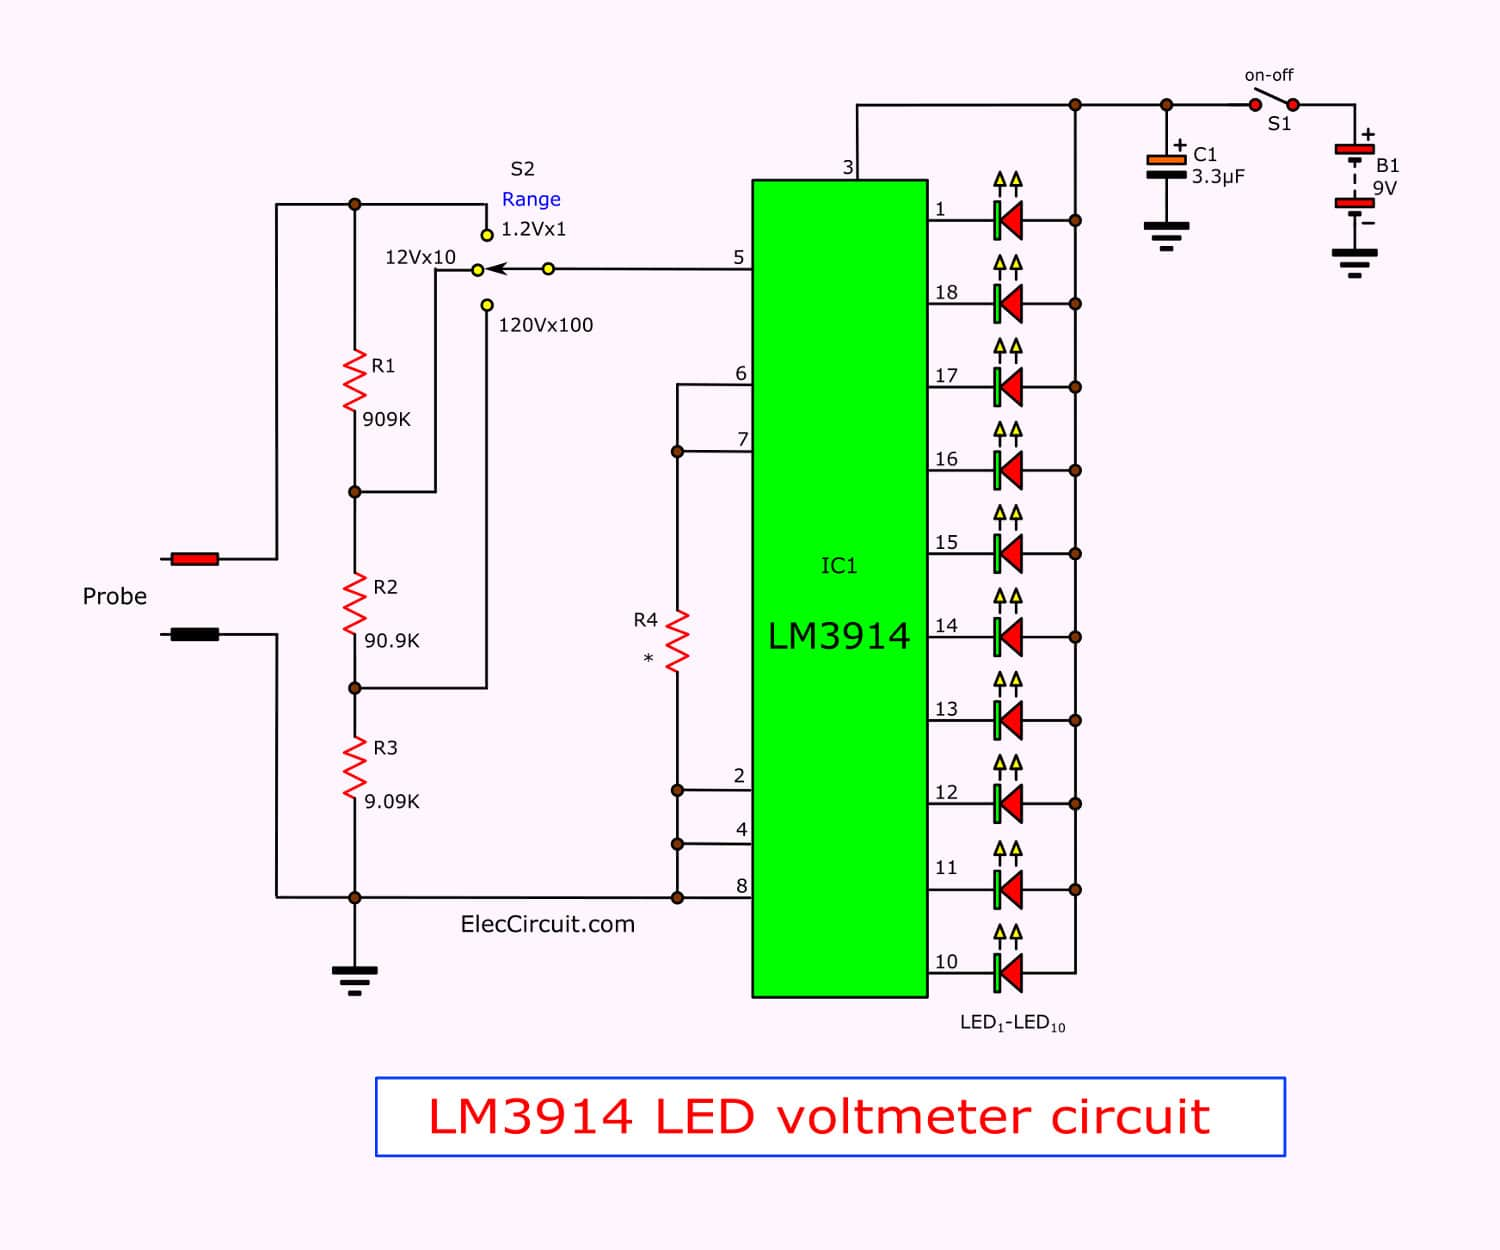 Simple LED voltmeter circuit using LM3914 - ElecCircuit